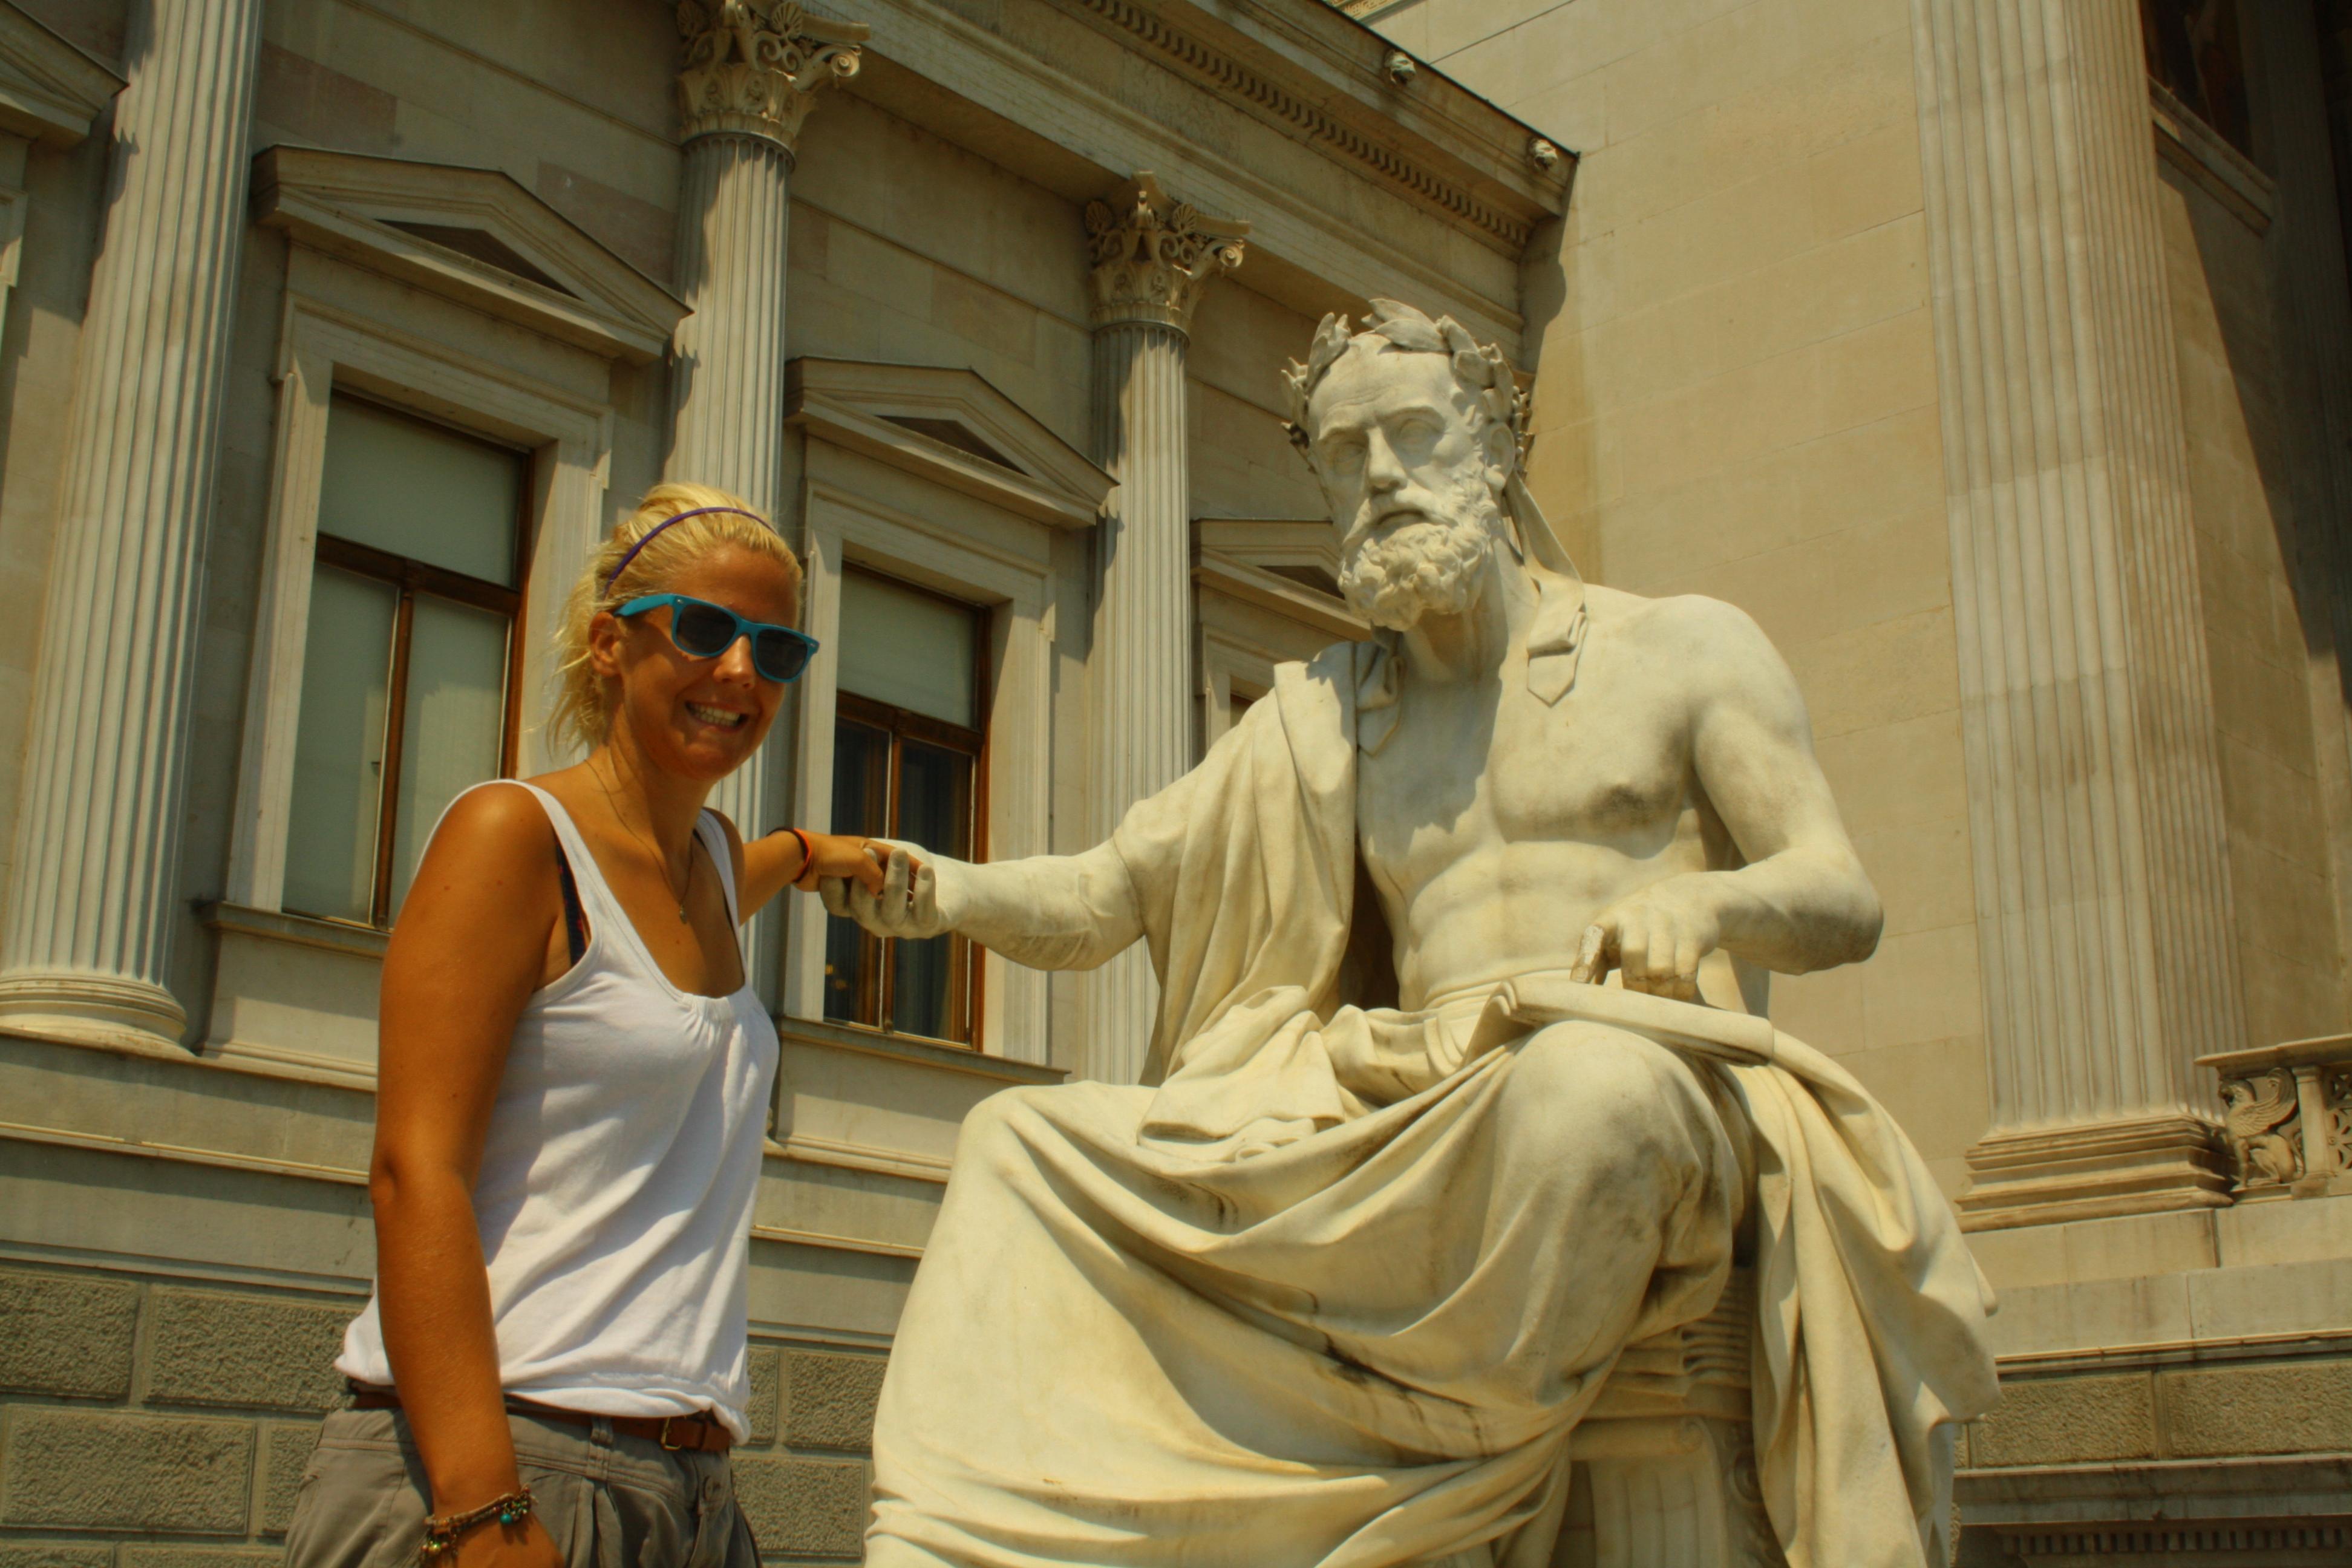 Me and Socrates